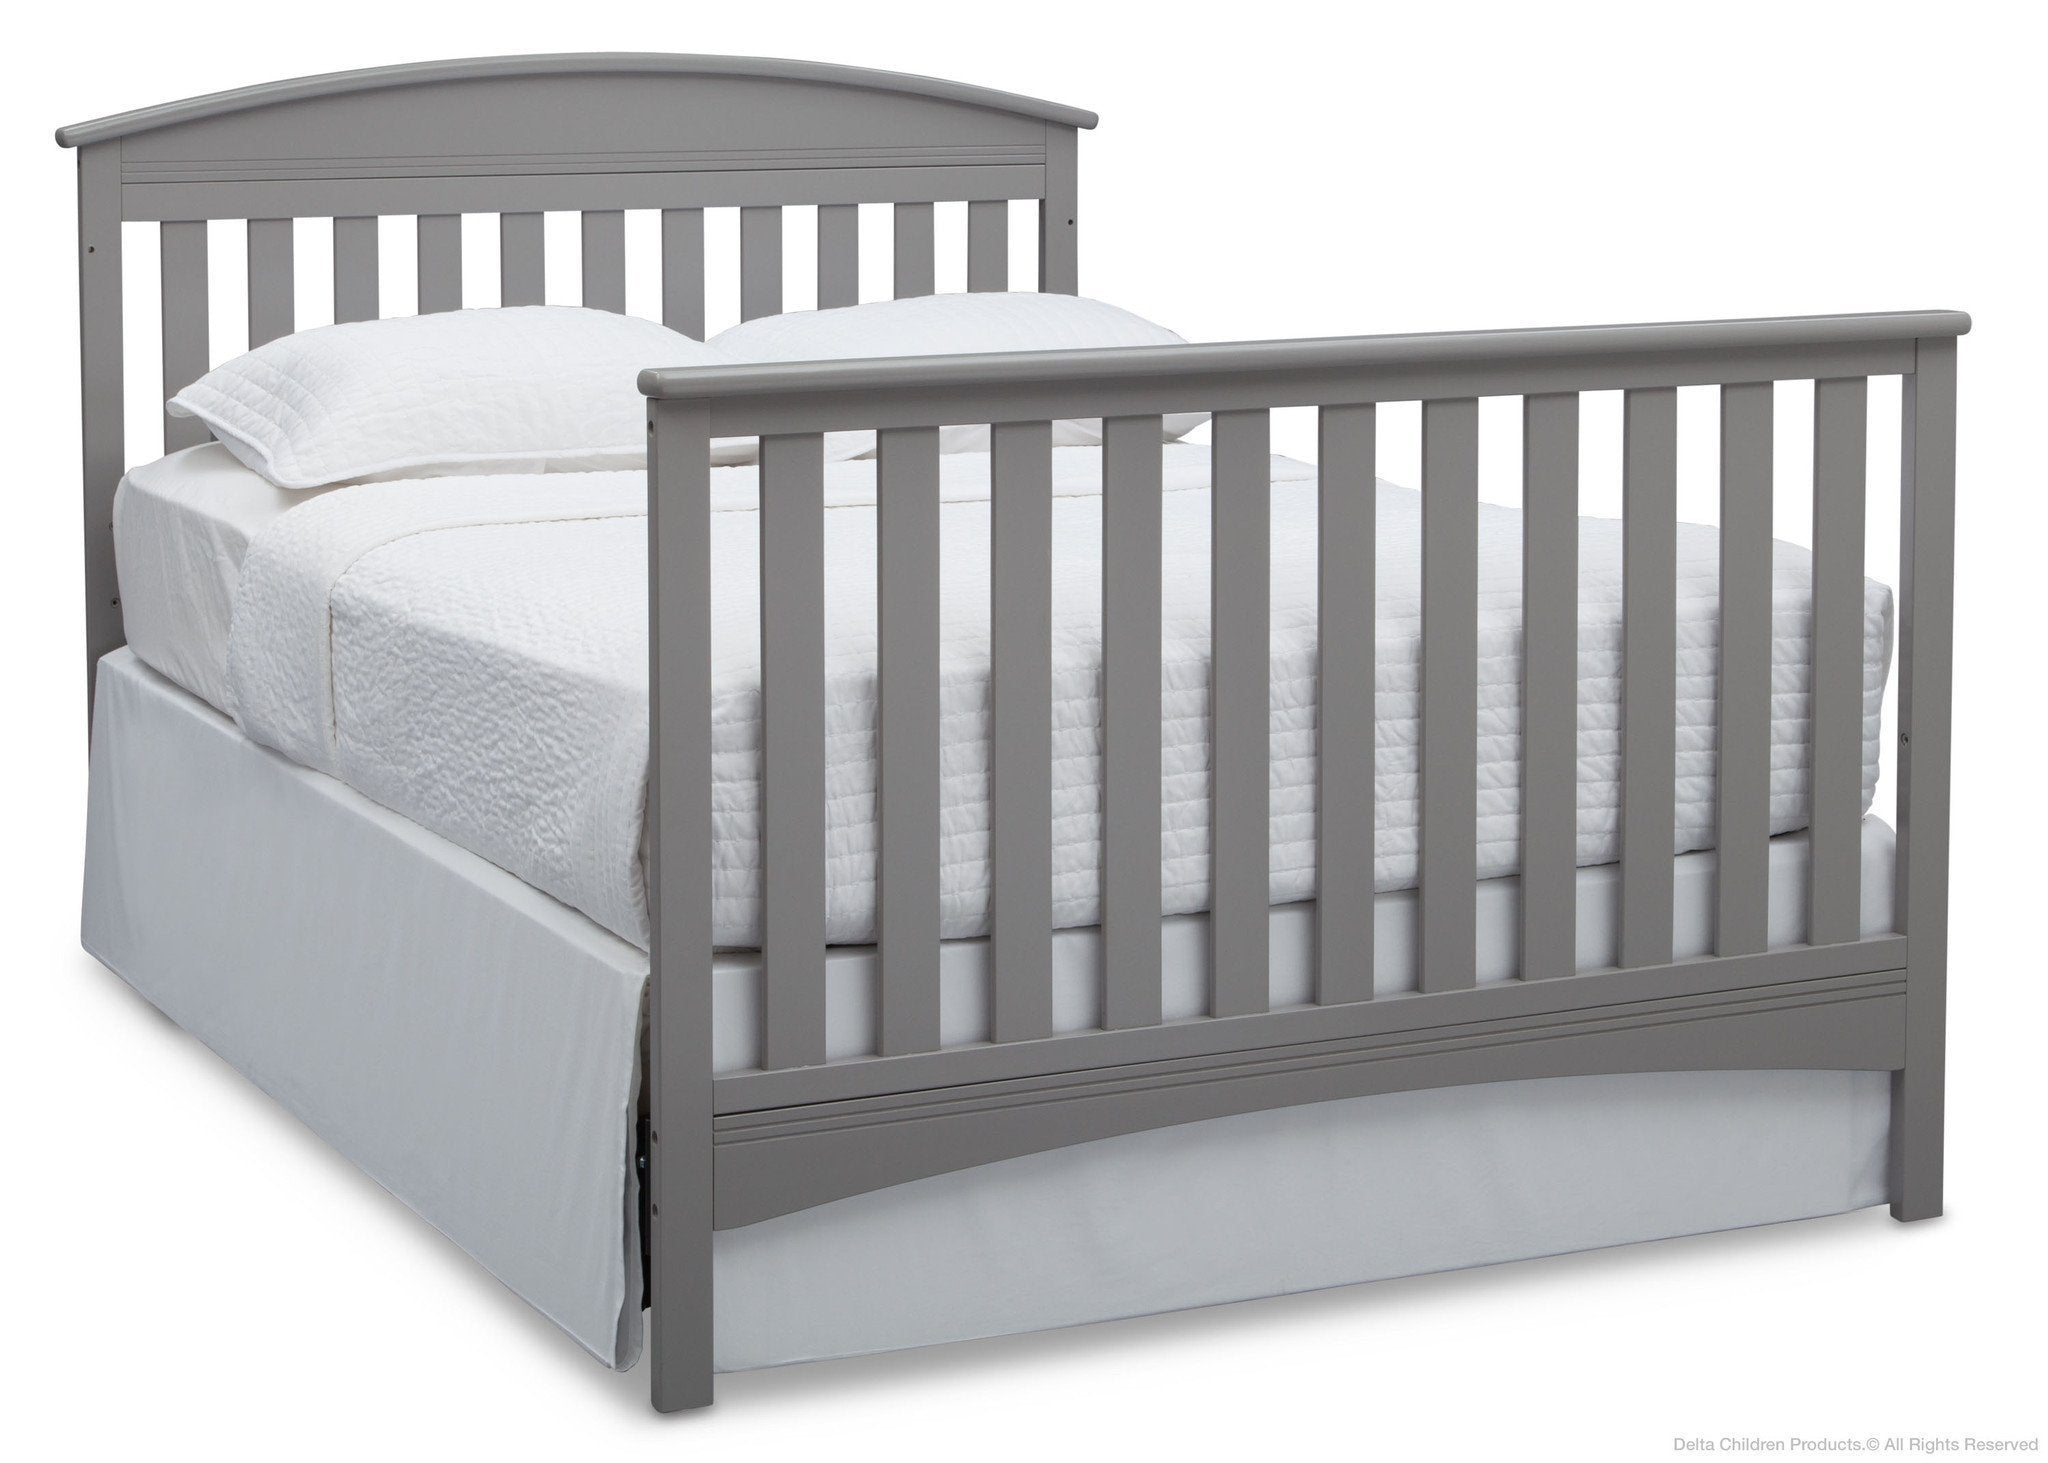 Delta Children Grey (026) Abby 4-in-1 Crib Full Bed Conversion with Footboard a5a